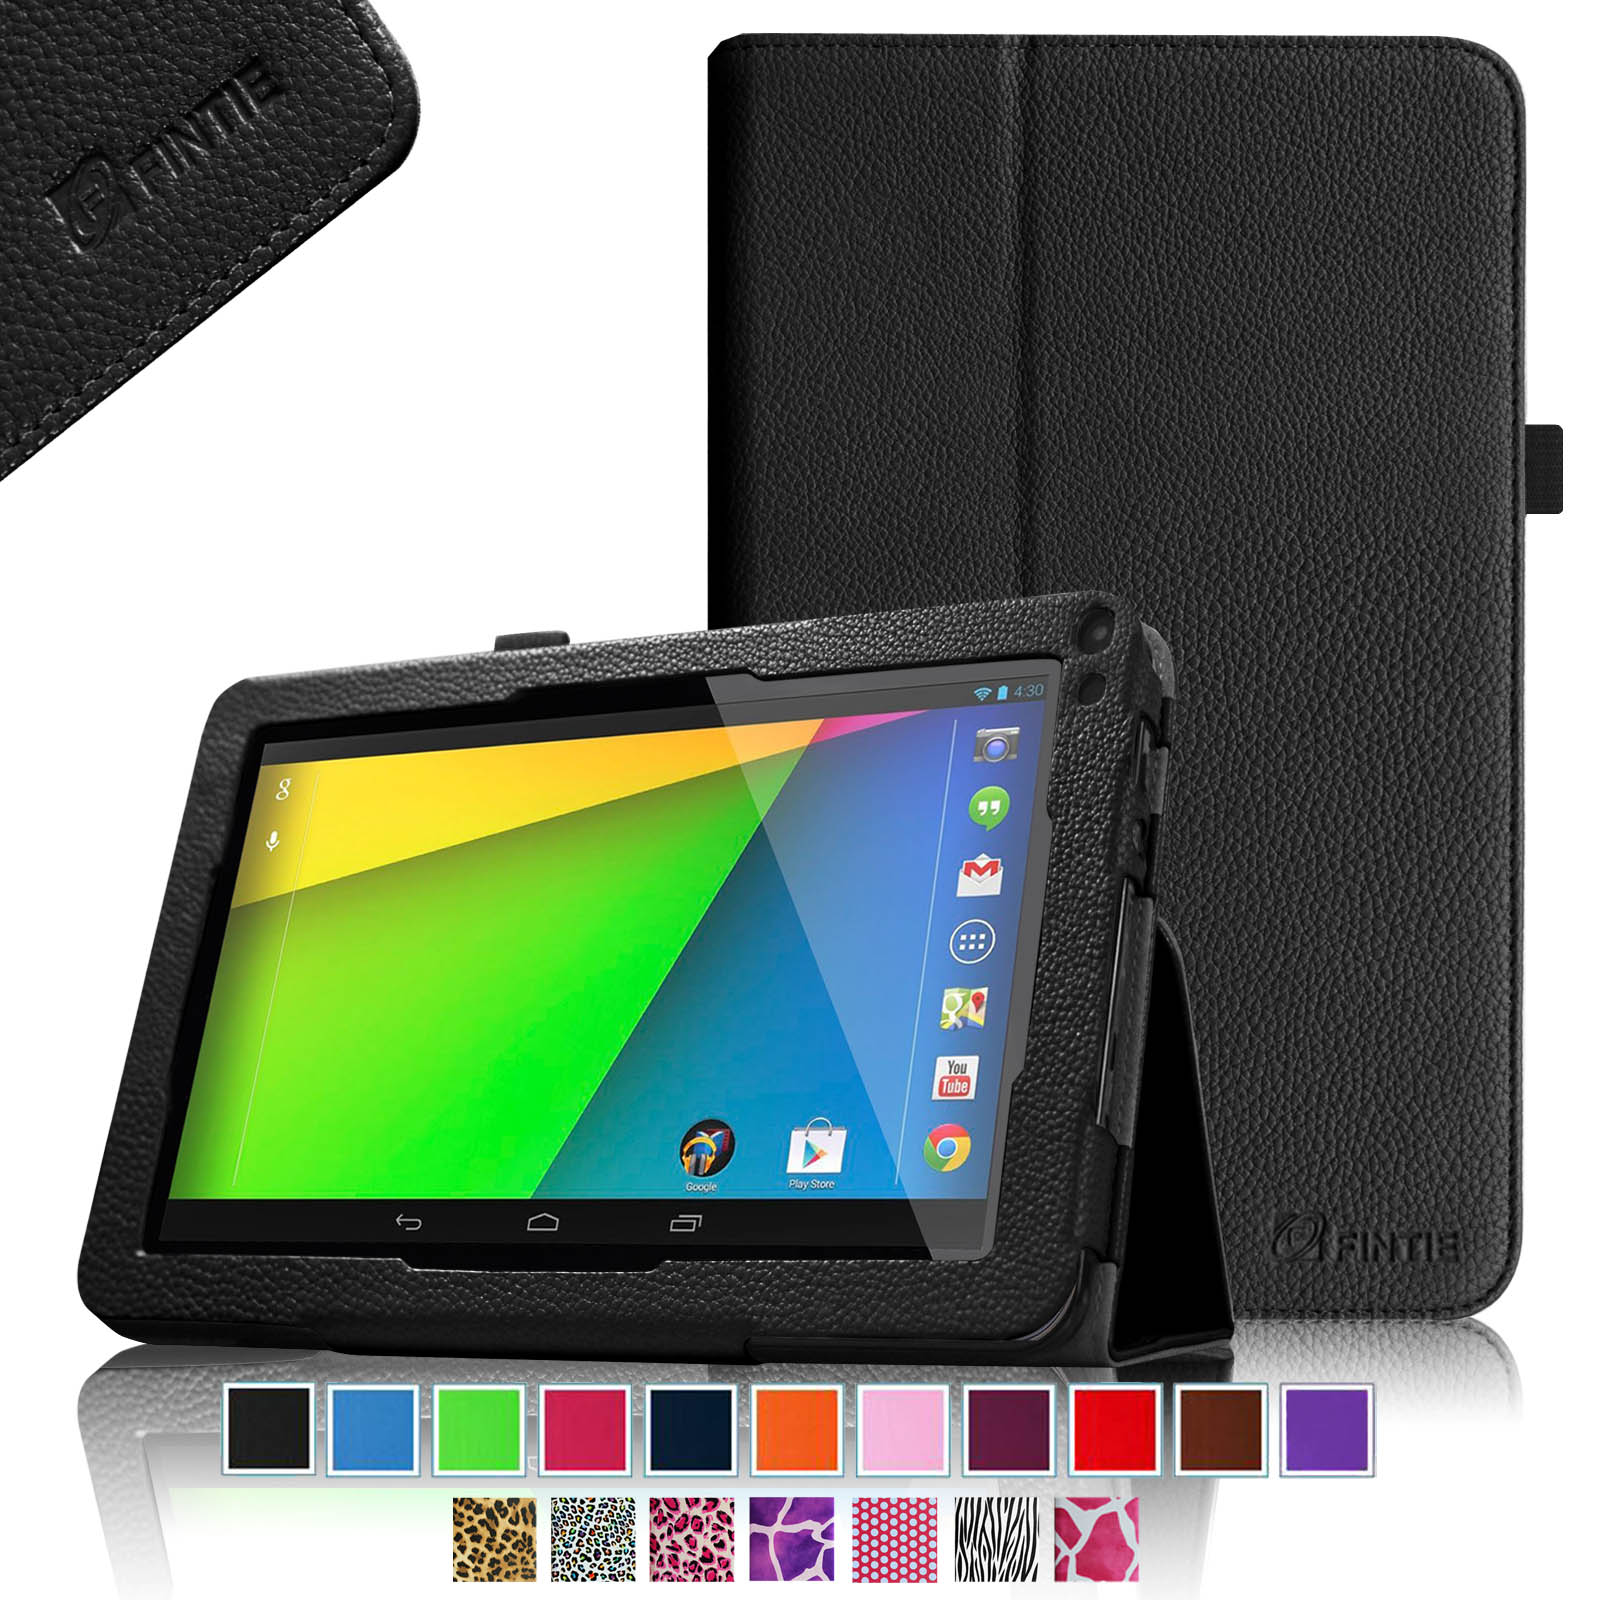 "RCA 9"" Tablet Case - Fintie Premium Leather Cover with Stylus Holder for RCA 9"" Tablet (Model# RCT6691W3), Black"